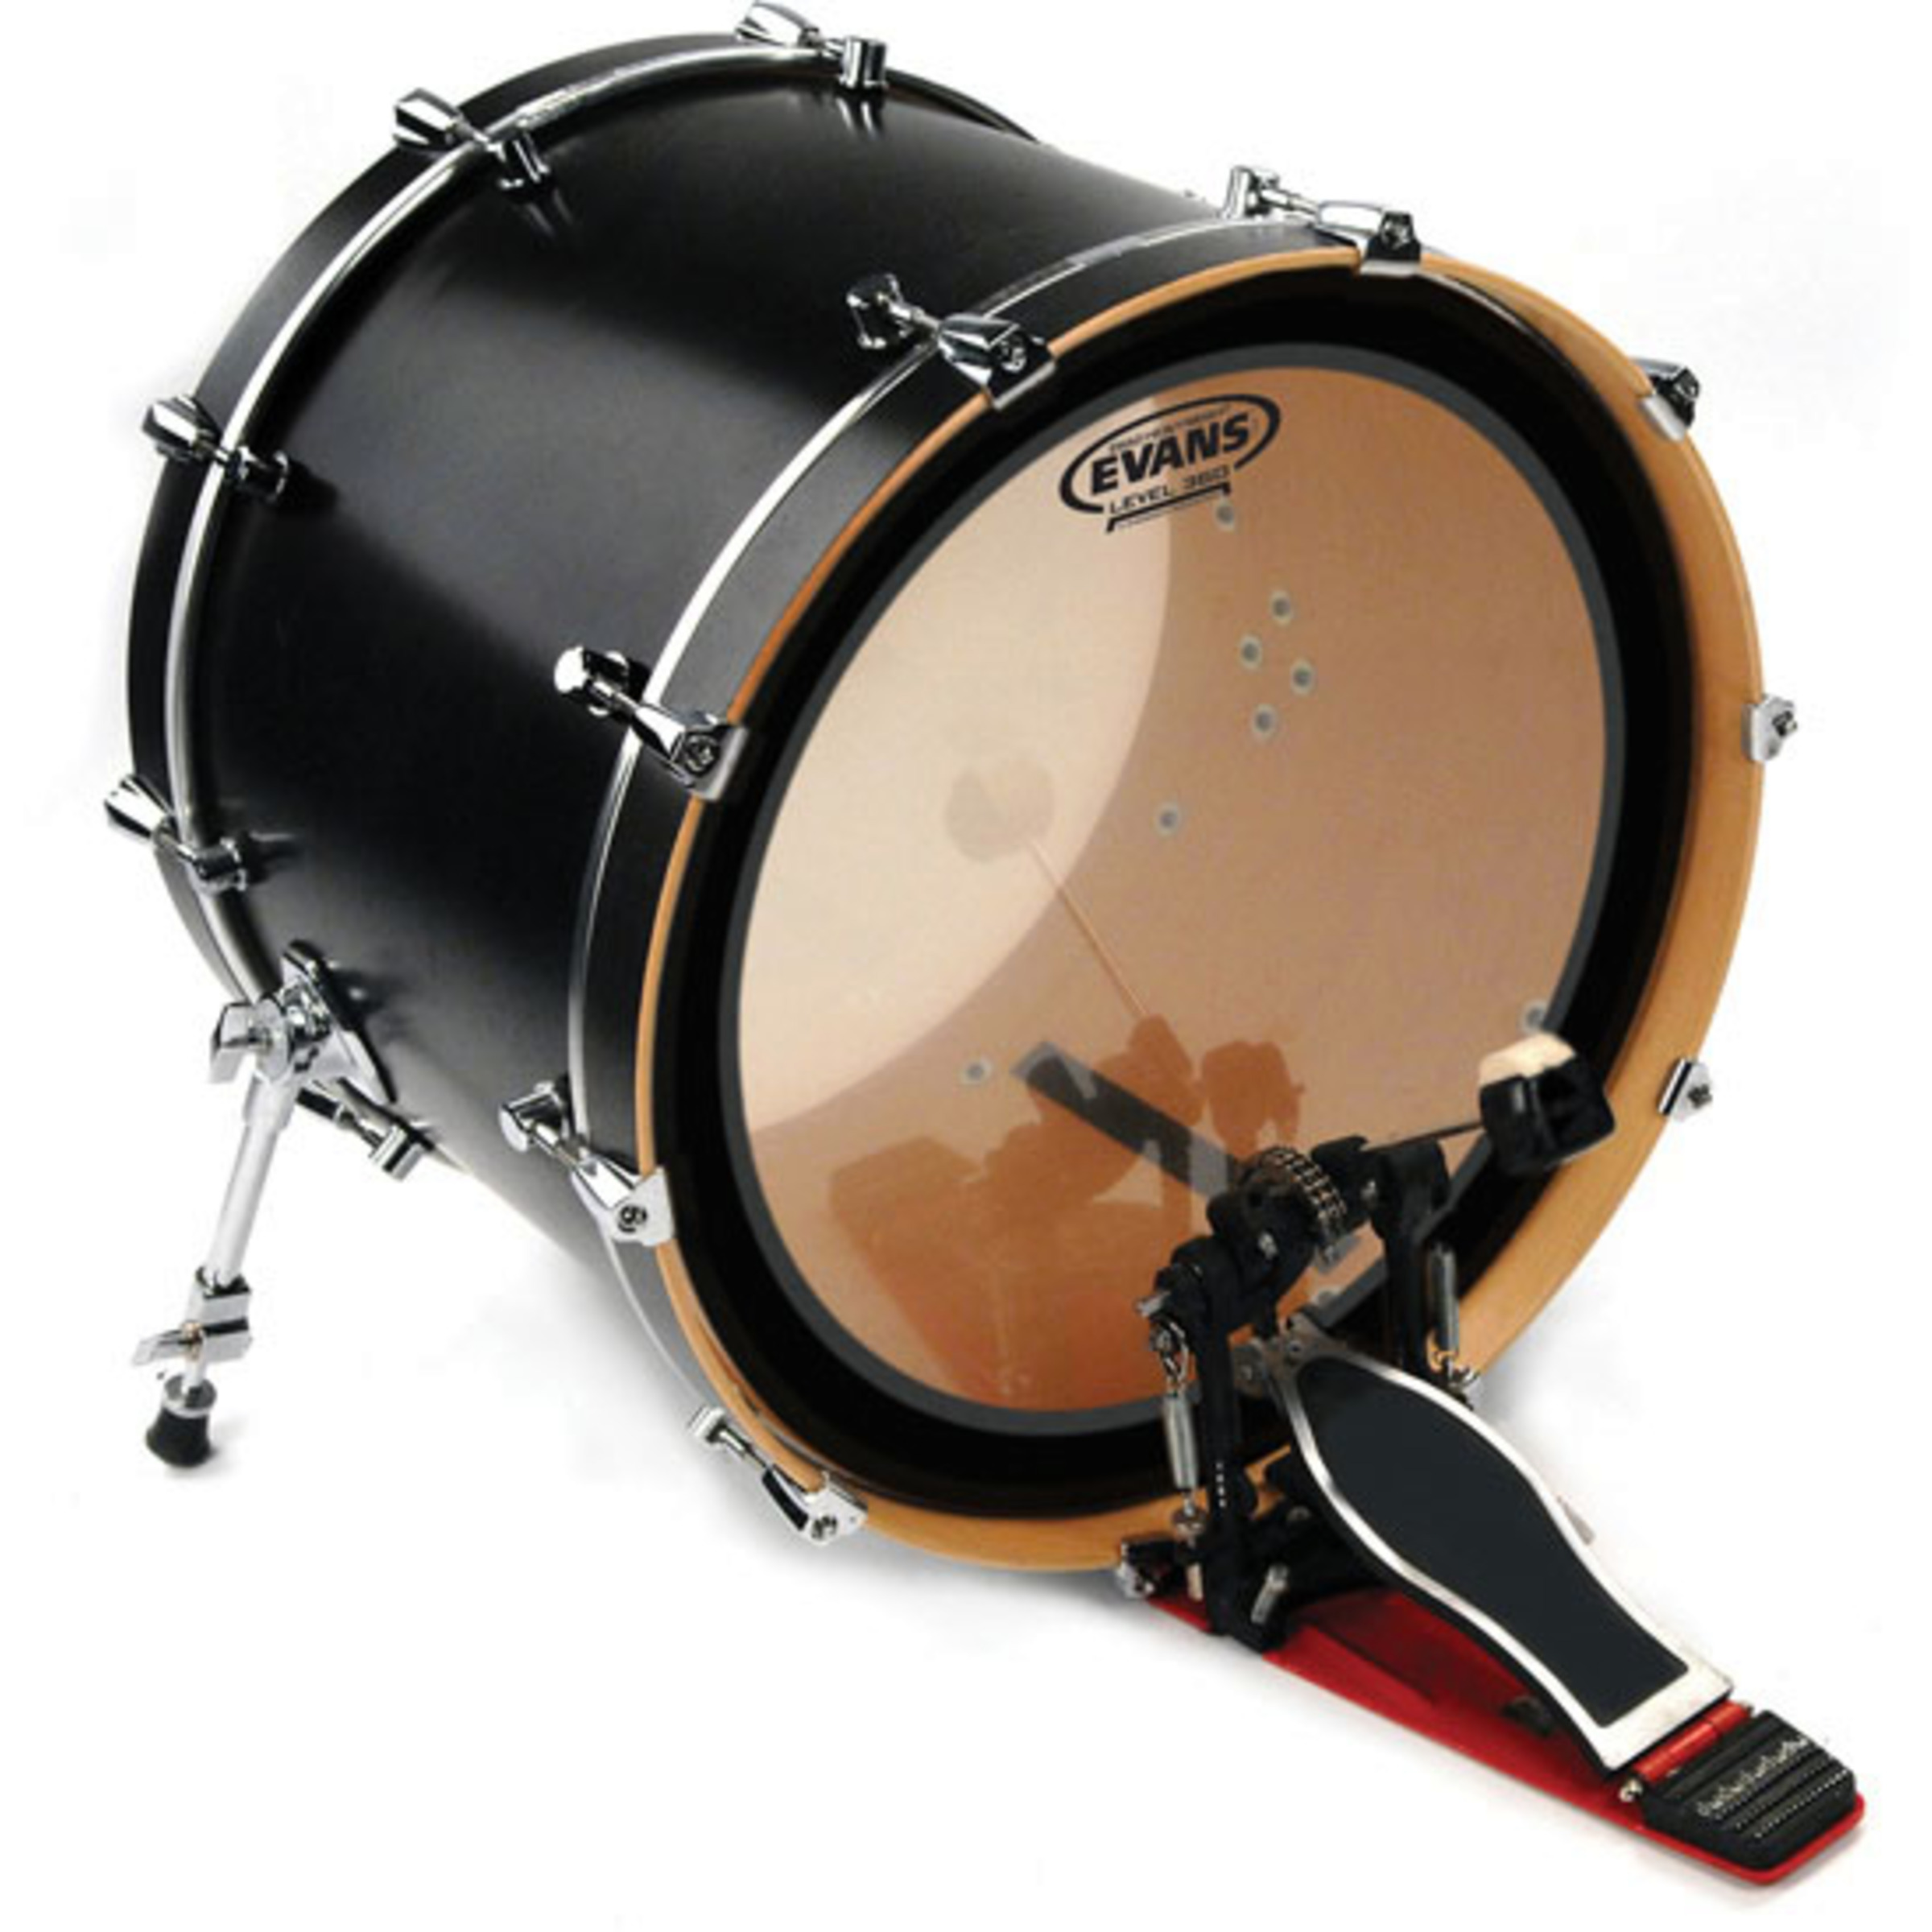 drums evans emad heavyweight bass drum batter head giggear. Black Bedroom Furniture Sets. Home Design Ideas